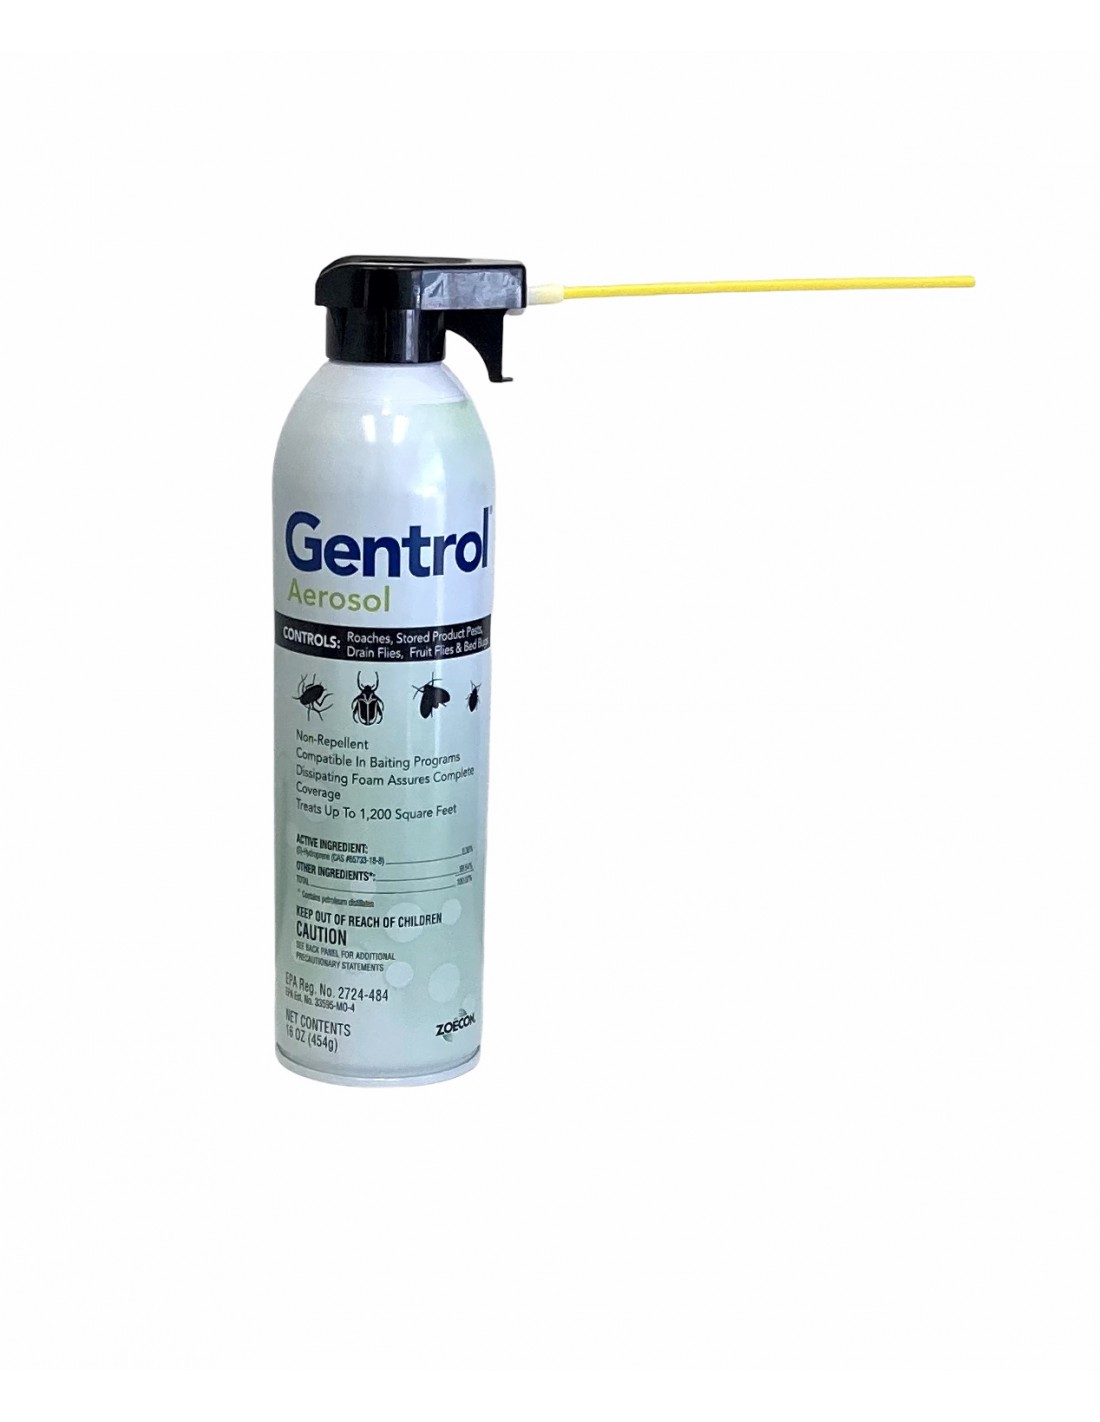 what is the shipping price cost should i would like to purchase Gentrol Aerosol and deliver in malaysia